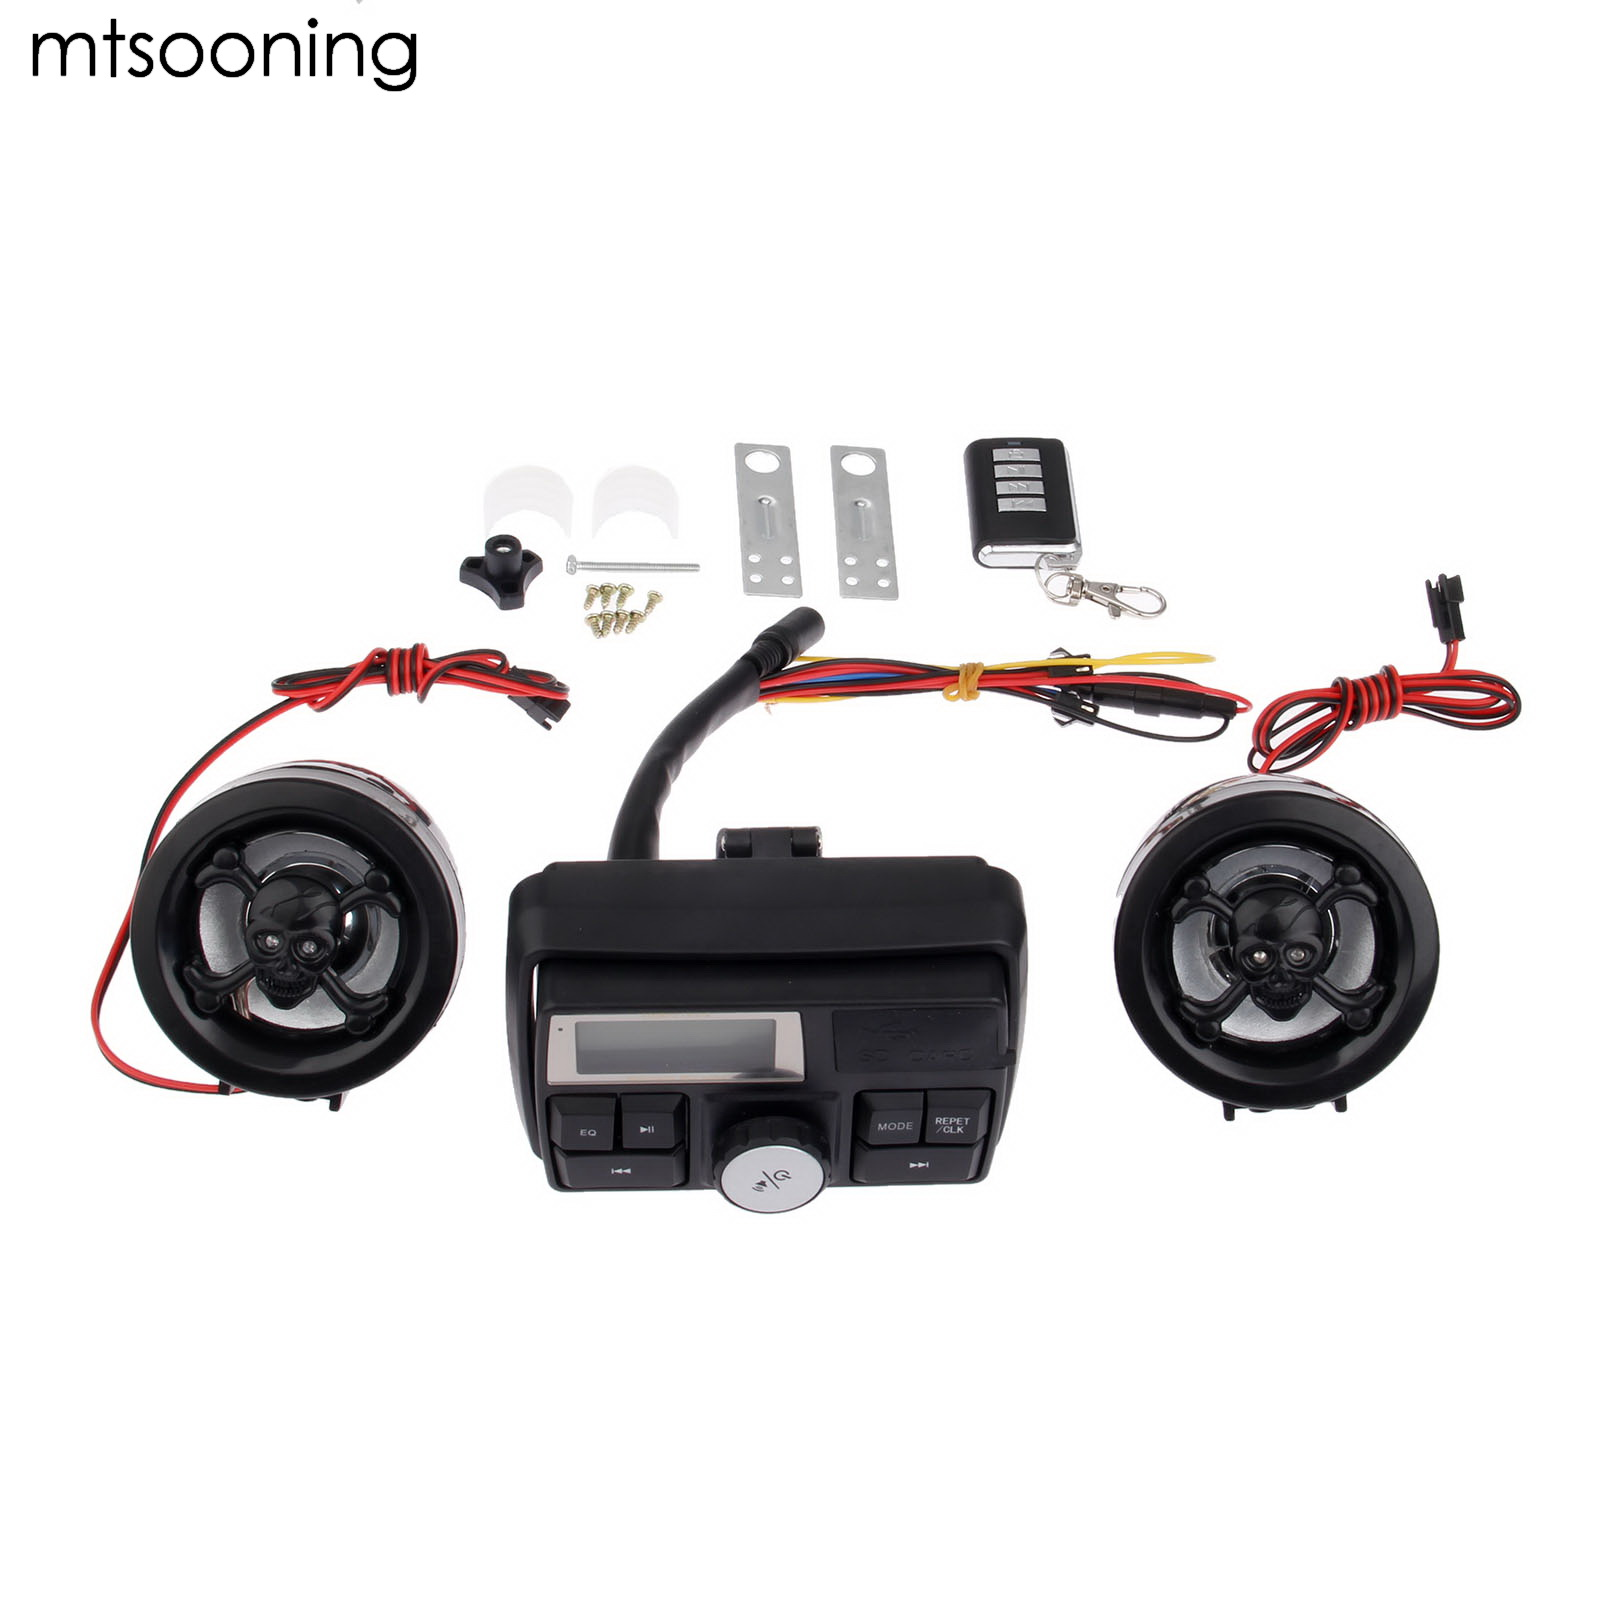 mtsooning Motorcycle MP3 player ATV Audio Music System Support USB 12V Motorbike FM Radio with speakers Motorcycle Music Player купить в Москве 2019